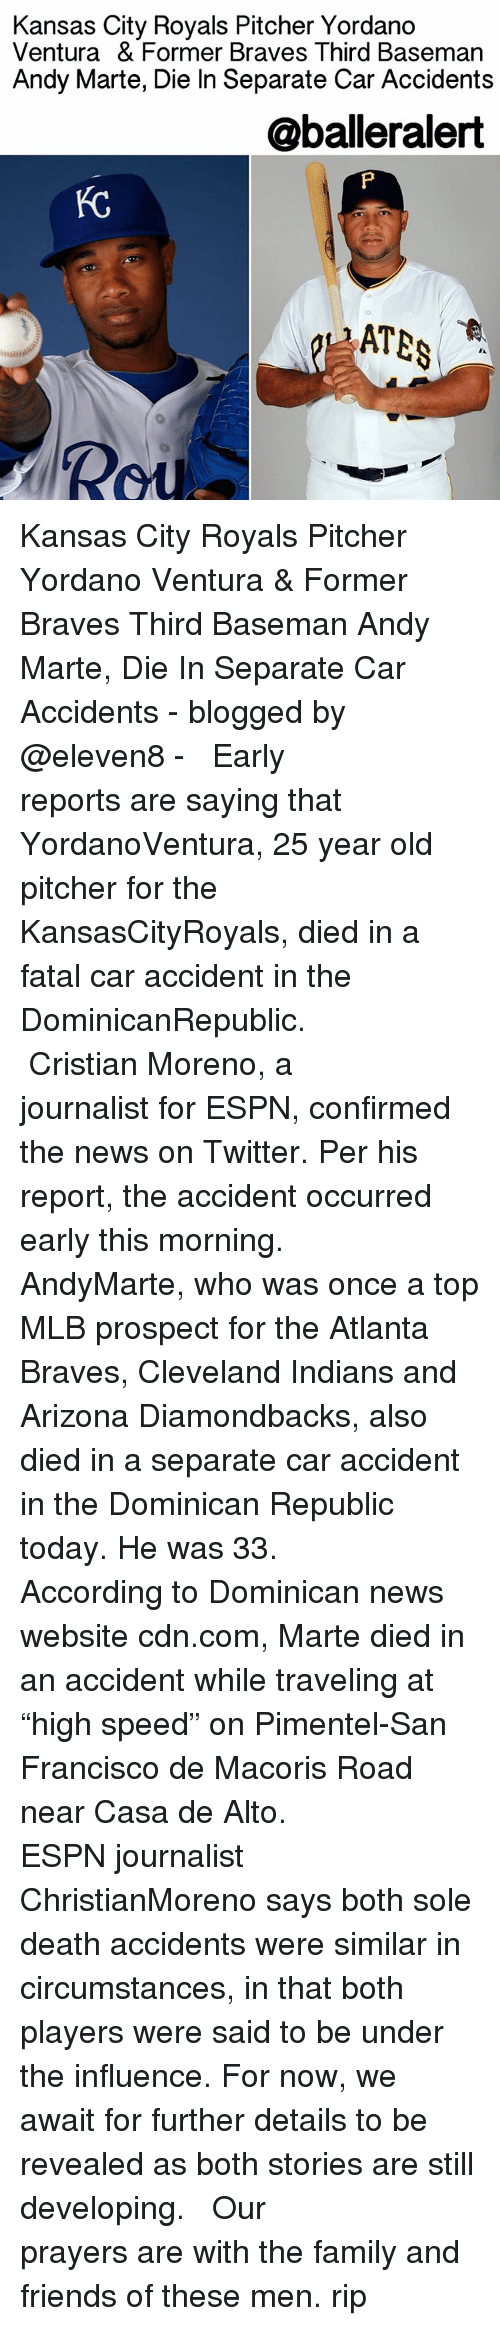 """Espn, Memes, and Mlb: Kansas City Royals Pitcher Yordano  Ventura & Former Braves Third Baseman  Andy Marte, Die In Separate Car Accidents  @balleralert Kansas City Royals Pitcher Yordano Ventura & Former Braves Third Baseman Andy Marte, Die In Separate Car Accidents - blogged by @eleven8 - ⠀⠀⠀⠀⠀⠀⠀⠀⠀ ⠀⠀⠀⠀⠀⠀⠀⠀⠀ Early reports are saying that YordanoVentura, 25 year old pitcher for the KansasCityRoyals, died in a fatal car accident in the DominicanRepublic. ⠀⠀⠀⠀⠀⠀⠀⠀⠀ ⠀⠀⠀⠀⠀⠀⠀⠀⠀ Cristian Moreno, a journalist for ESPN, confirmed the news on Twitter. Per his report, the accident occurred early this morning. ⠀⠀⠀⠀⠀⠀⠀⠀⠀ ⠀⠀⠀⠀⠀⠀⠀⠀⠀ AndyMarte, who was once a top MLB prospect for the Atlanta Braves, Cleveland Indians and Arizona Diamondbacks, also died in a separate car accident in the Dominican Republic today. He was 33. ⠀⠀⠀⠀⠀⠀⠀⠀⠀ ⠀⠀⠀⠀⠀⠀⠀⠀⠀ According to Dominican news website cdn.com, Marte died in an accident while traveling at """"high speed"""" on Pimentel-San Francisco de Macoris Road near Casa de Alto. ⠀⠀⠀⠀⠀⠀⠀⠀⠀ ⠀⠀⠀⠀⠀⠀⠀⠀⠀ ESPN journalist ChristianMoreno says both sole death accidents were similar in circumstances, in that both players were said to be under the influence. For now, we await for further details to be revealed as both stories are still developing. ⠀⠀⠀⠀⠀⠀⠀⠀⠀ ⠀⠀⠀⠀⠀⠀⠀⠀⠀ Our prayers are with the family and friends of these men. rip"""